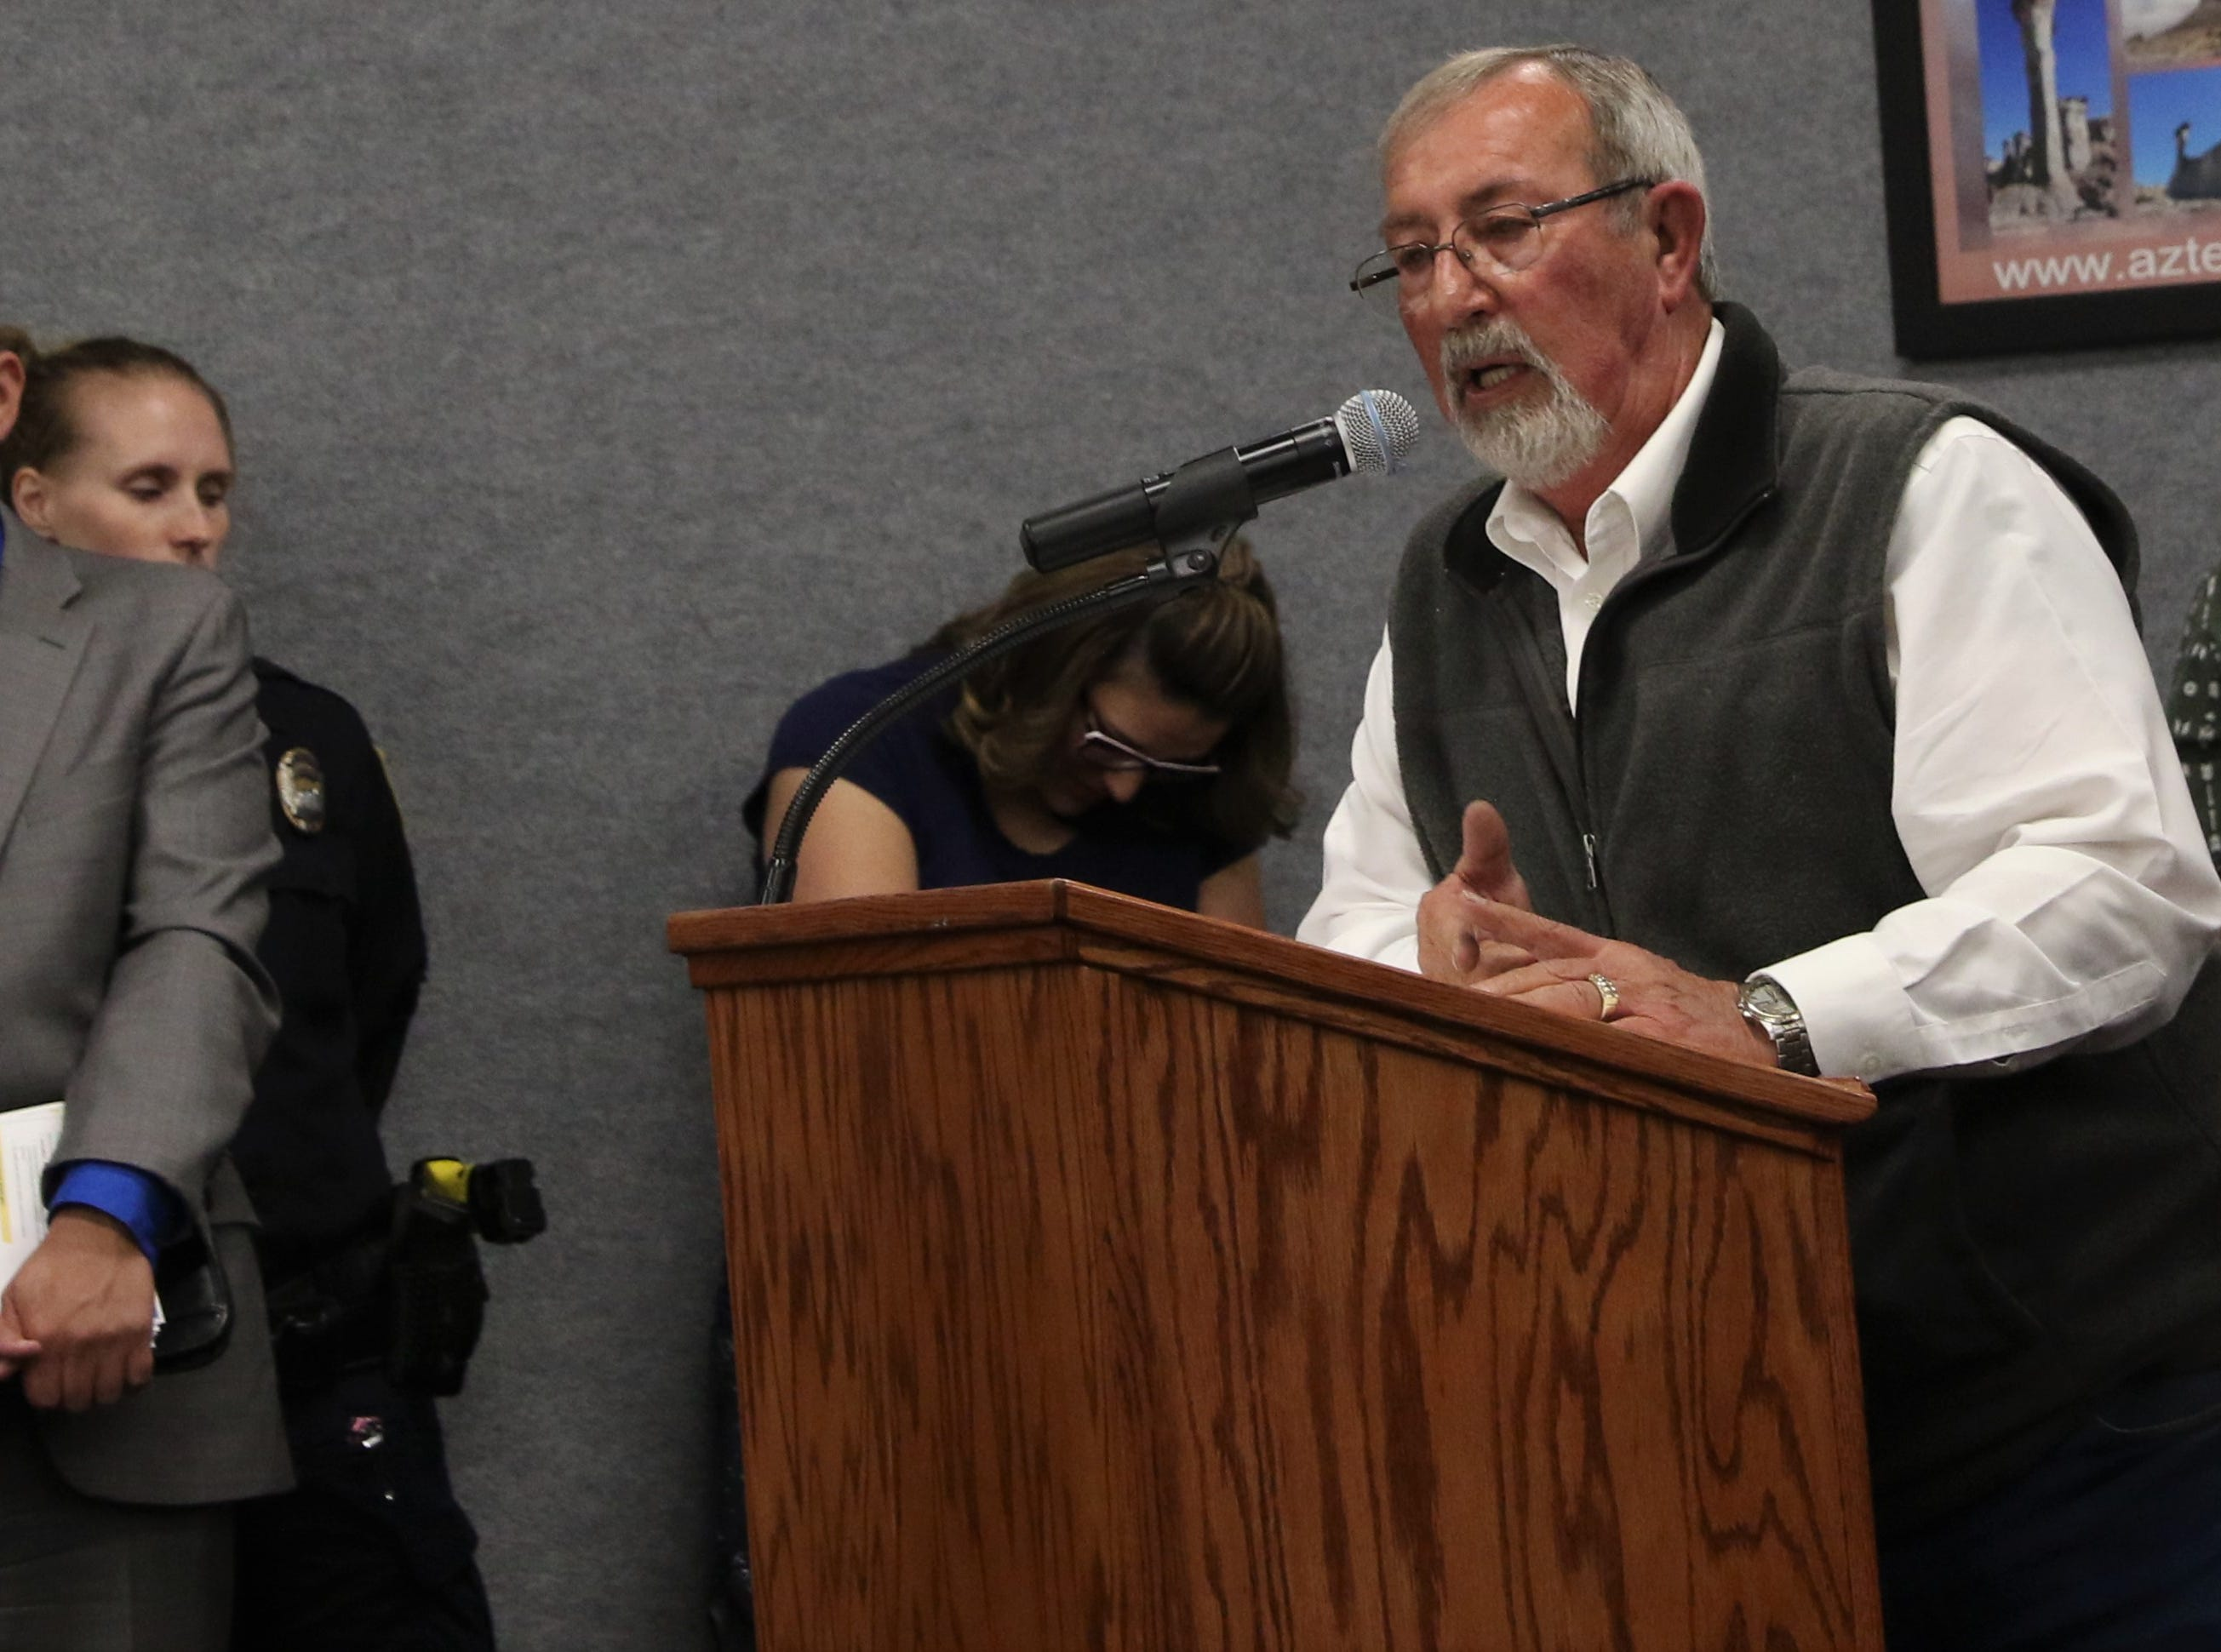 Former Mayor Mike Padilla speaks, Tuesday, March 26, 2019, during an Aztec City Commission meeting.